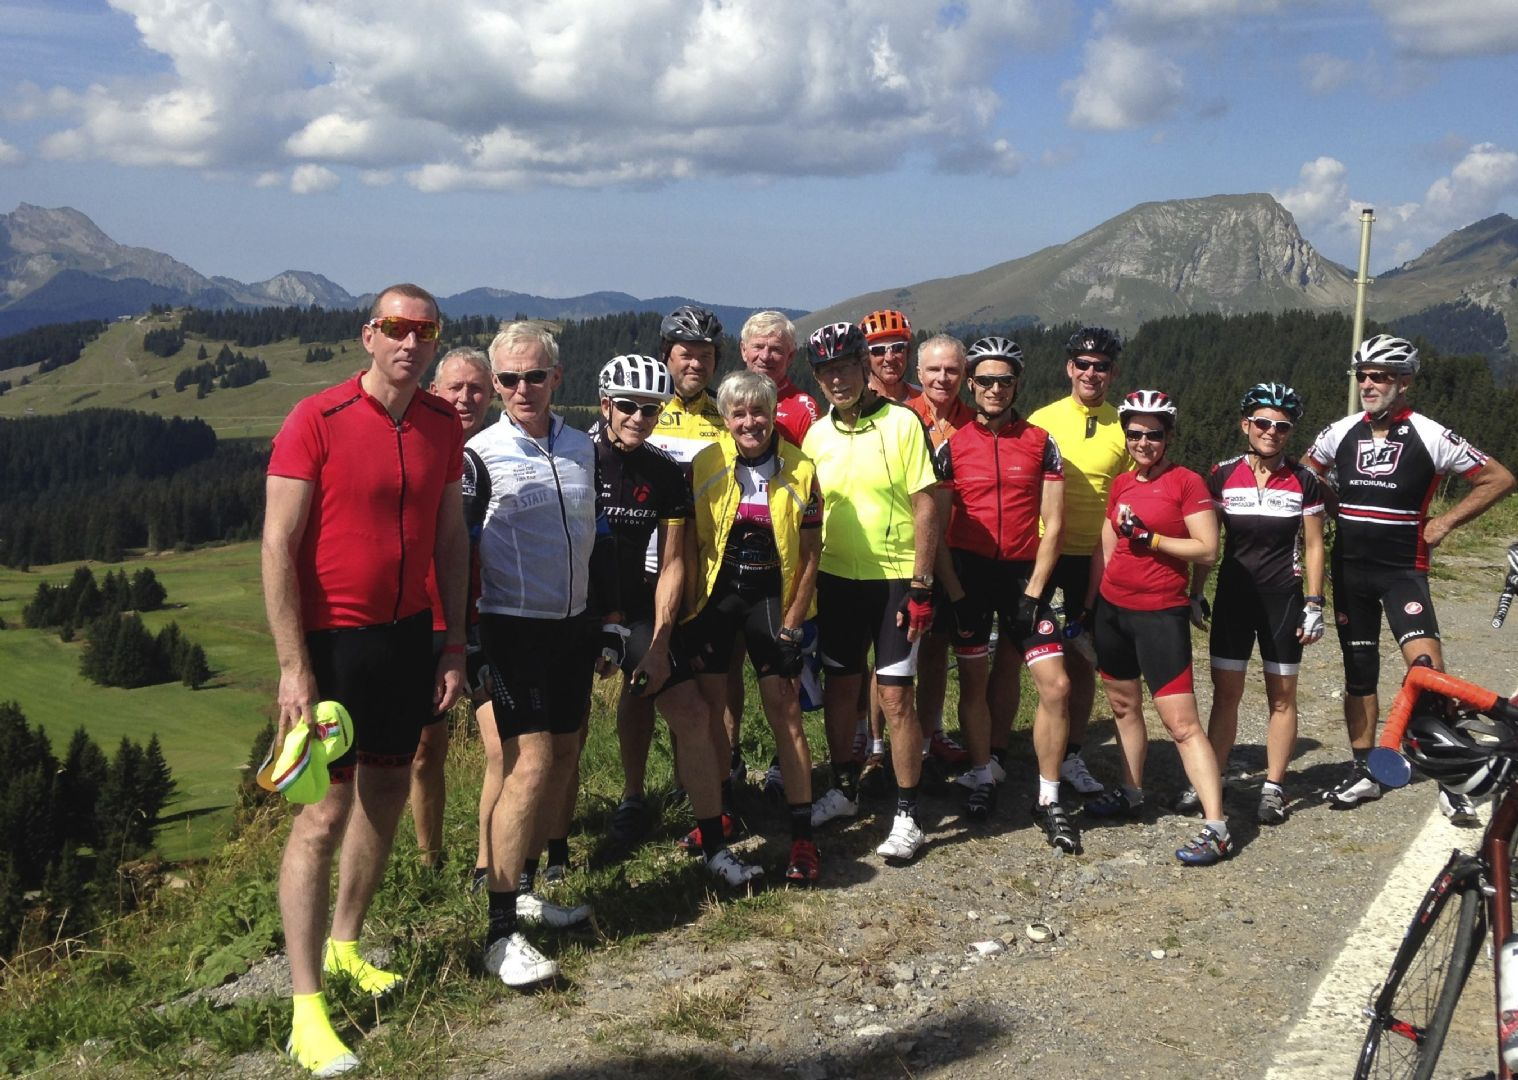 _Staff.292.19592.jpg - France - Classic Alps Passes - Alpine Introduction - Guided Road Cycling Holiday - Road Cycling